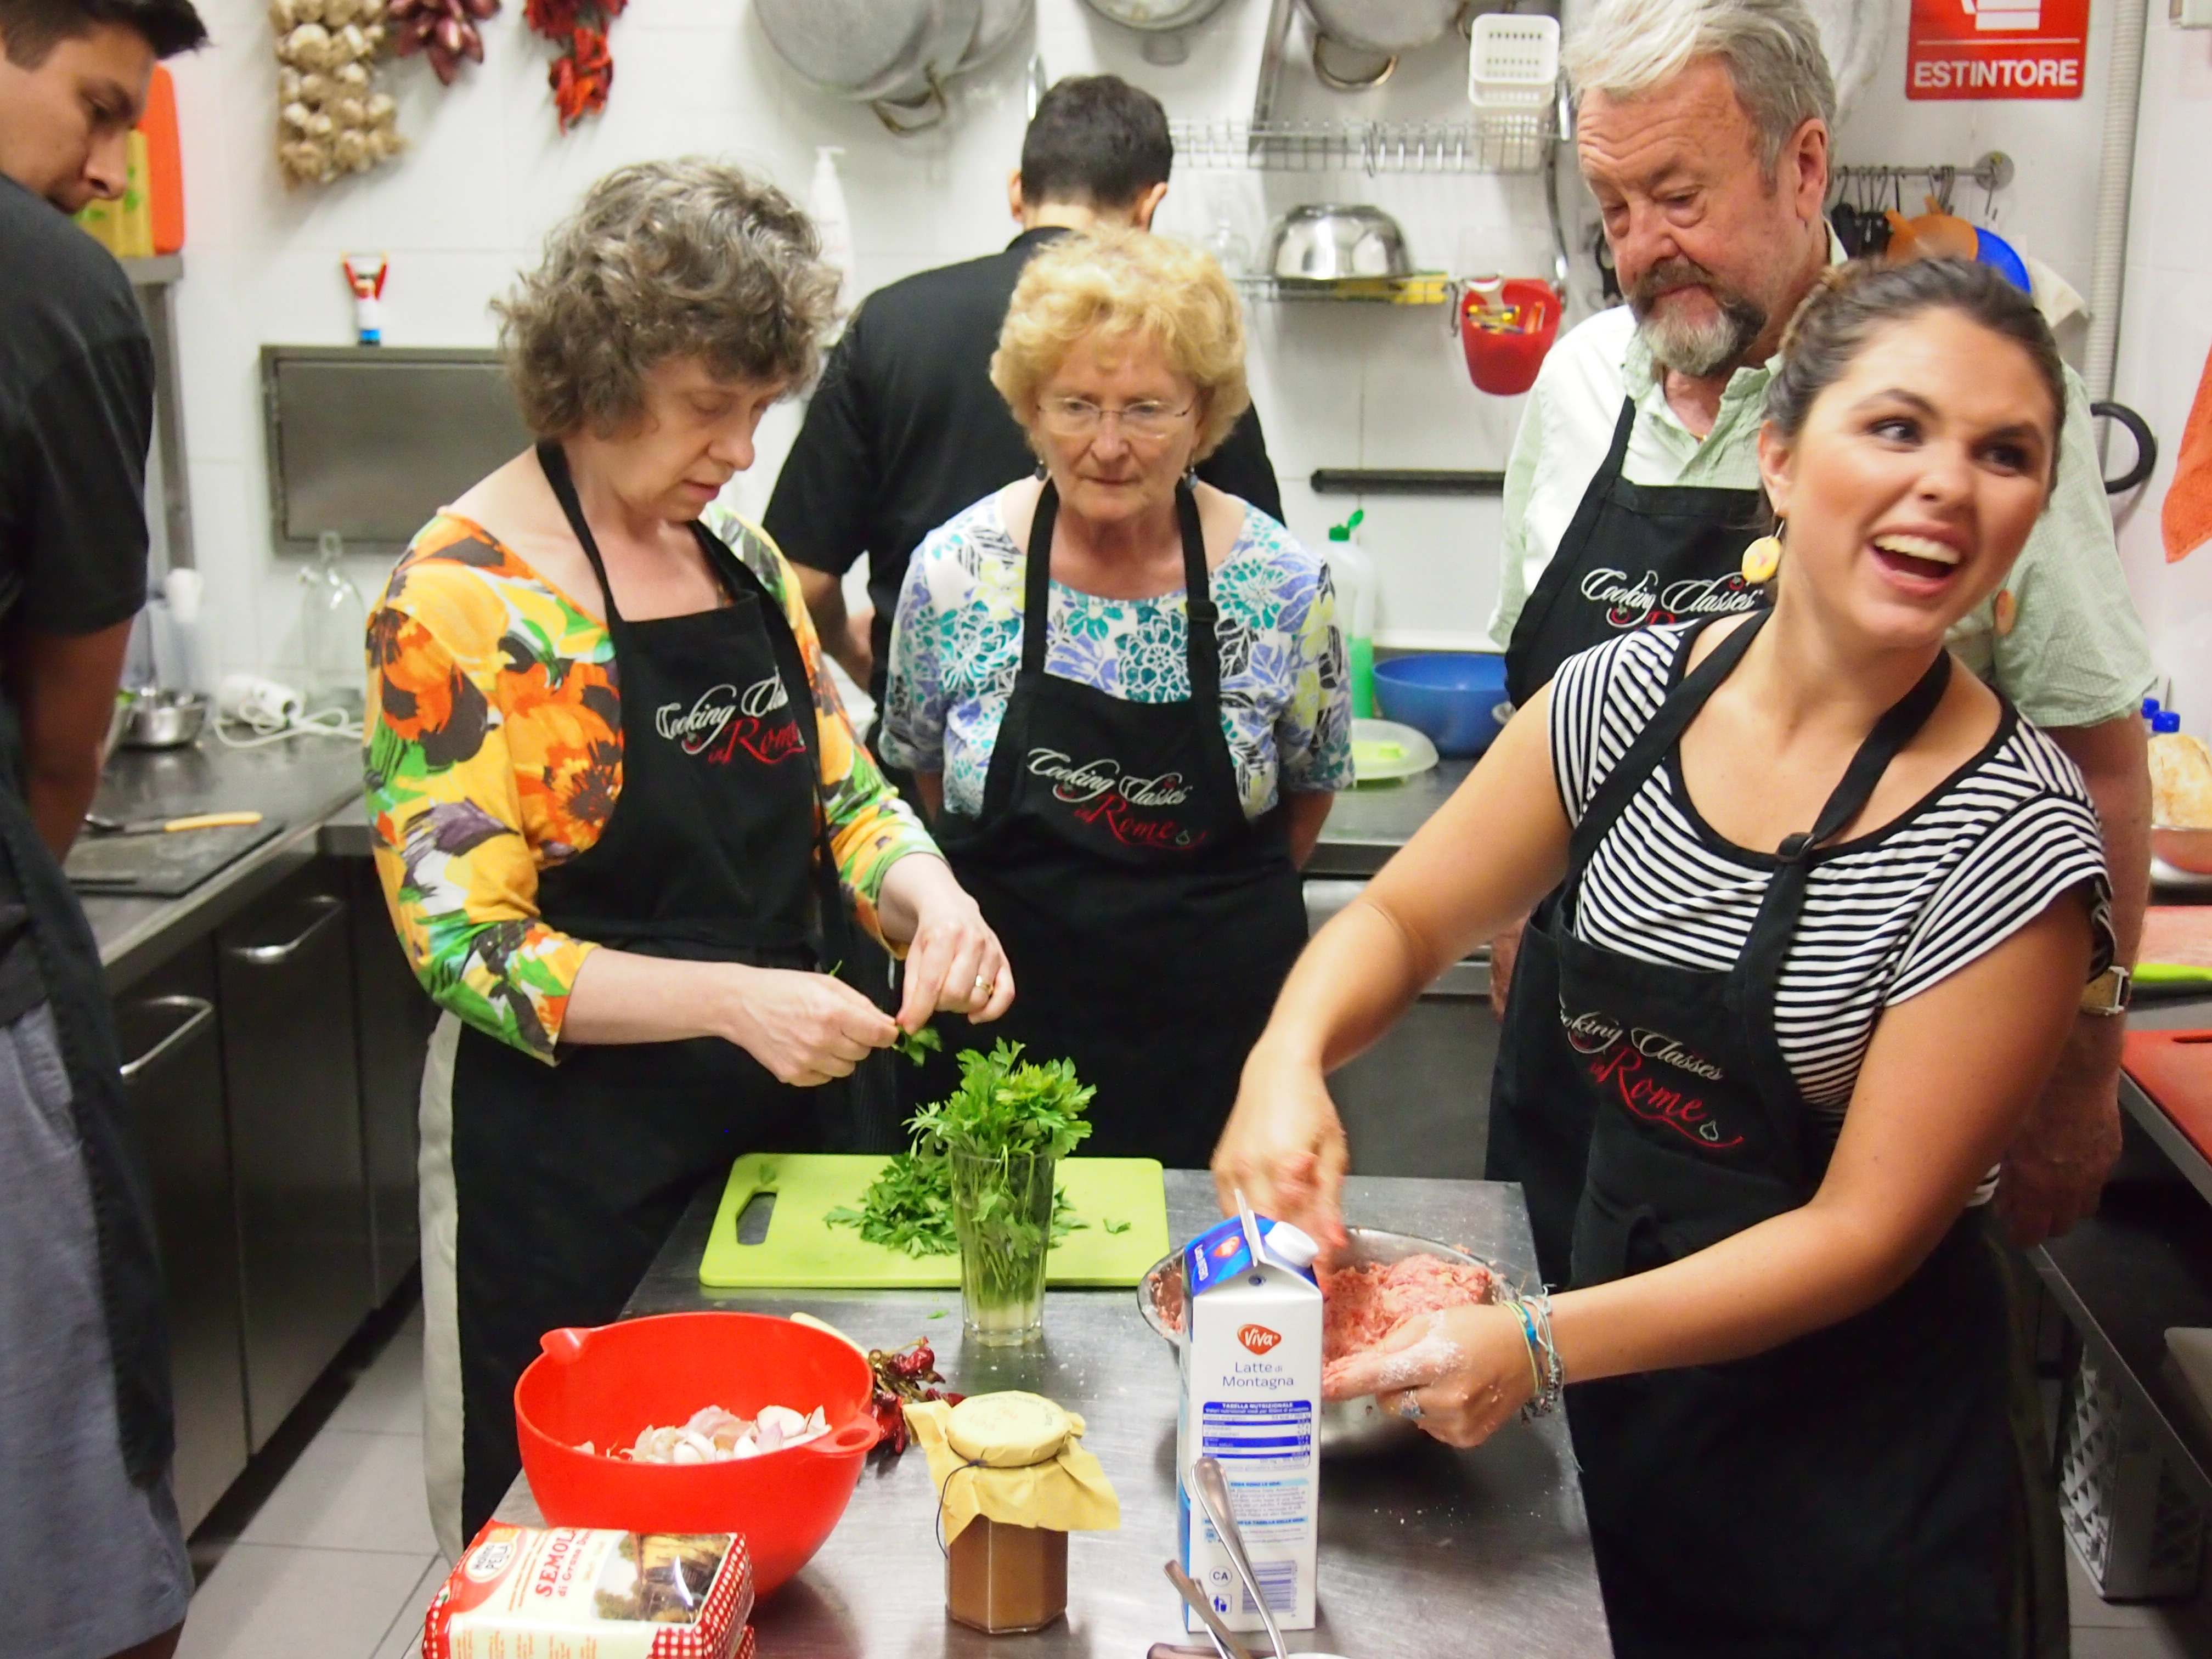 Hjem - Cooking Classes in Rome